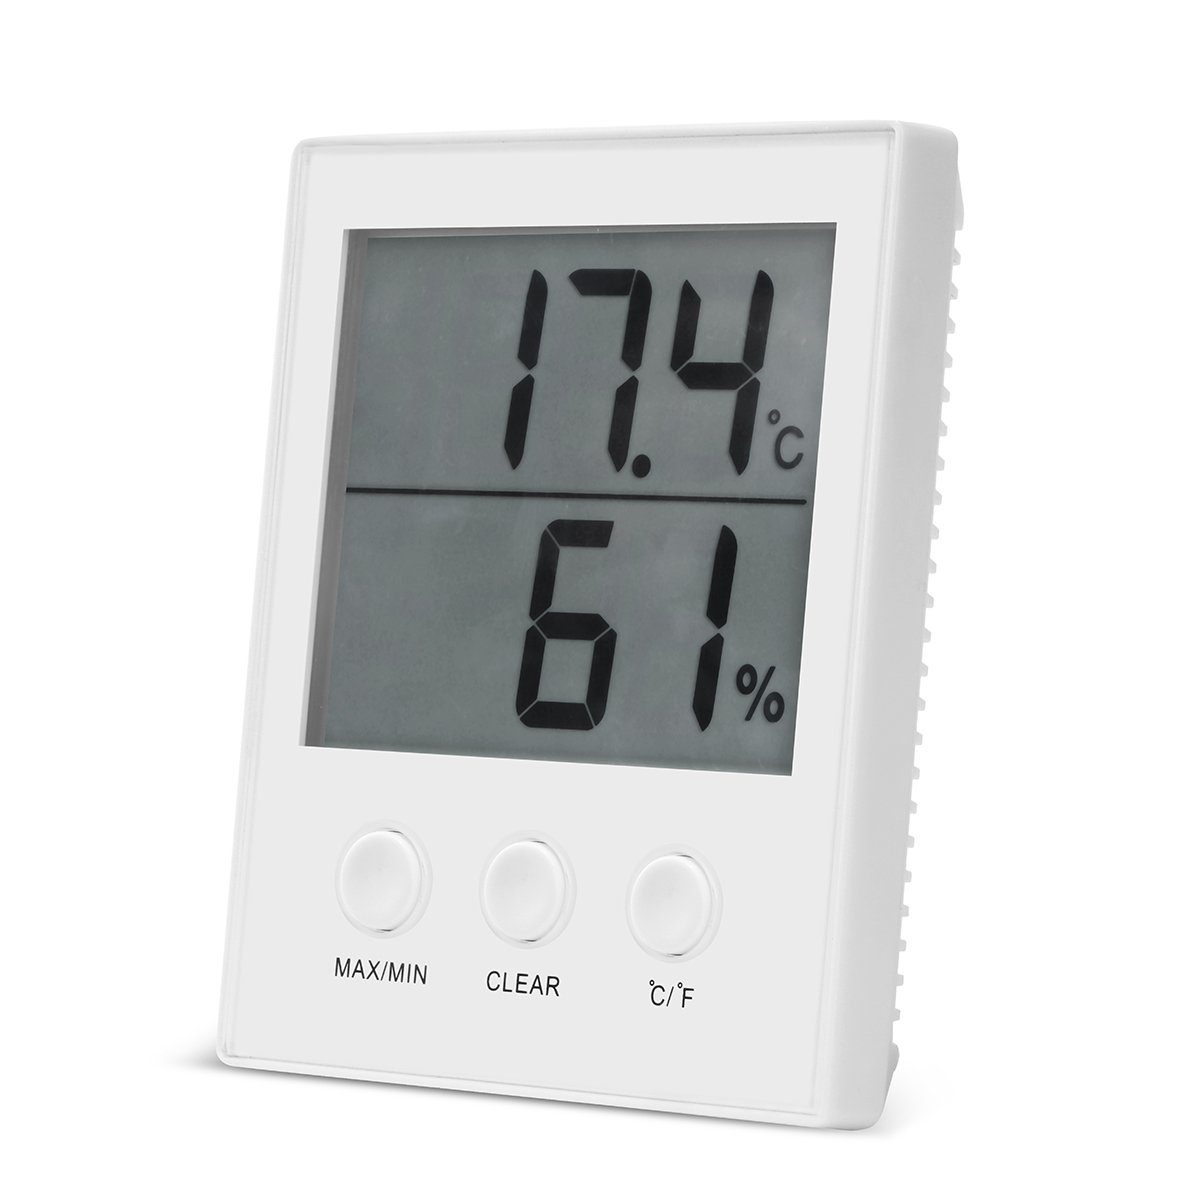 Digital Hygrometer Thermometer, Temperature and Humidity Gauge Monitor Meter with Large LCD Display Office for Home Office Indoor. KAIKING